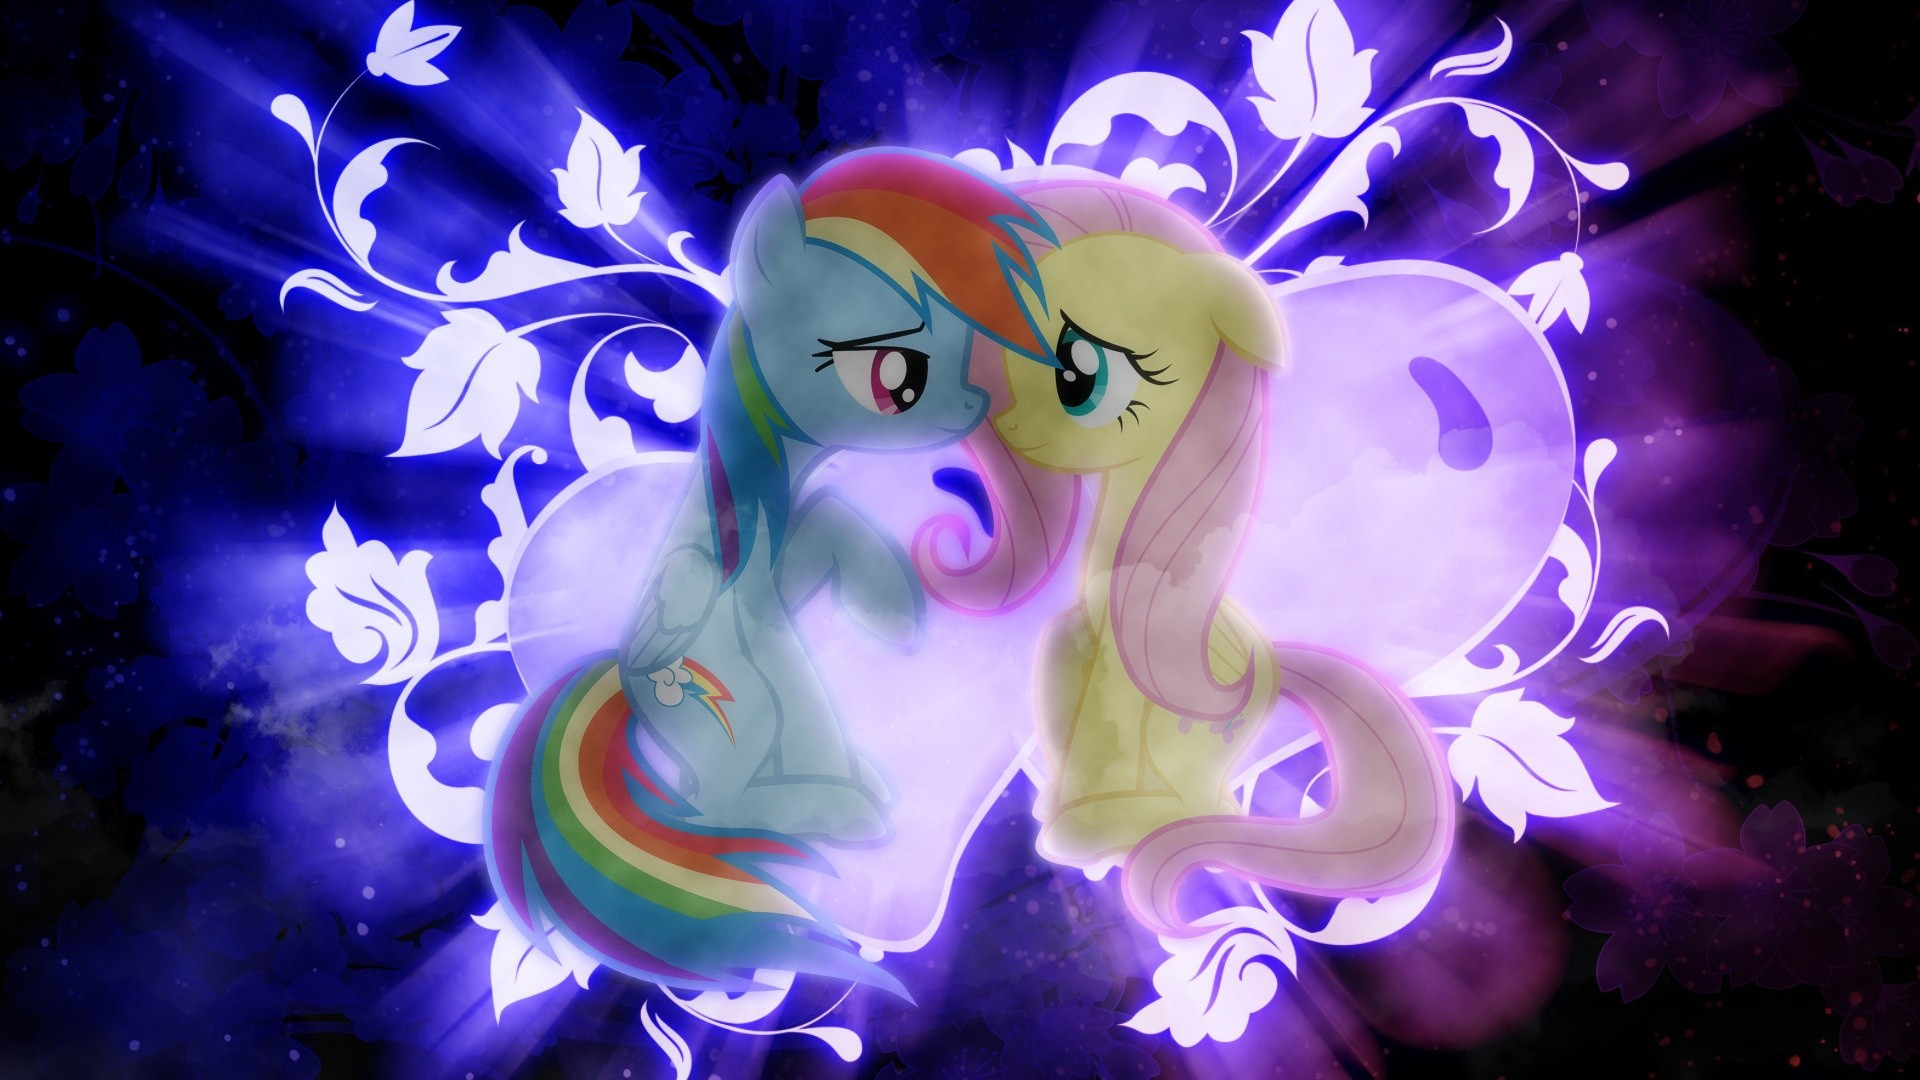 1920x1080 Rainbow Dash and Fluttershy shipping wallpaper.jpg